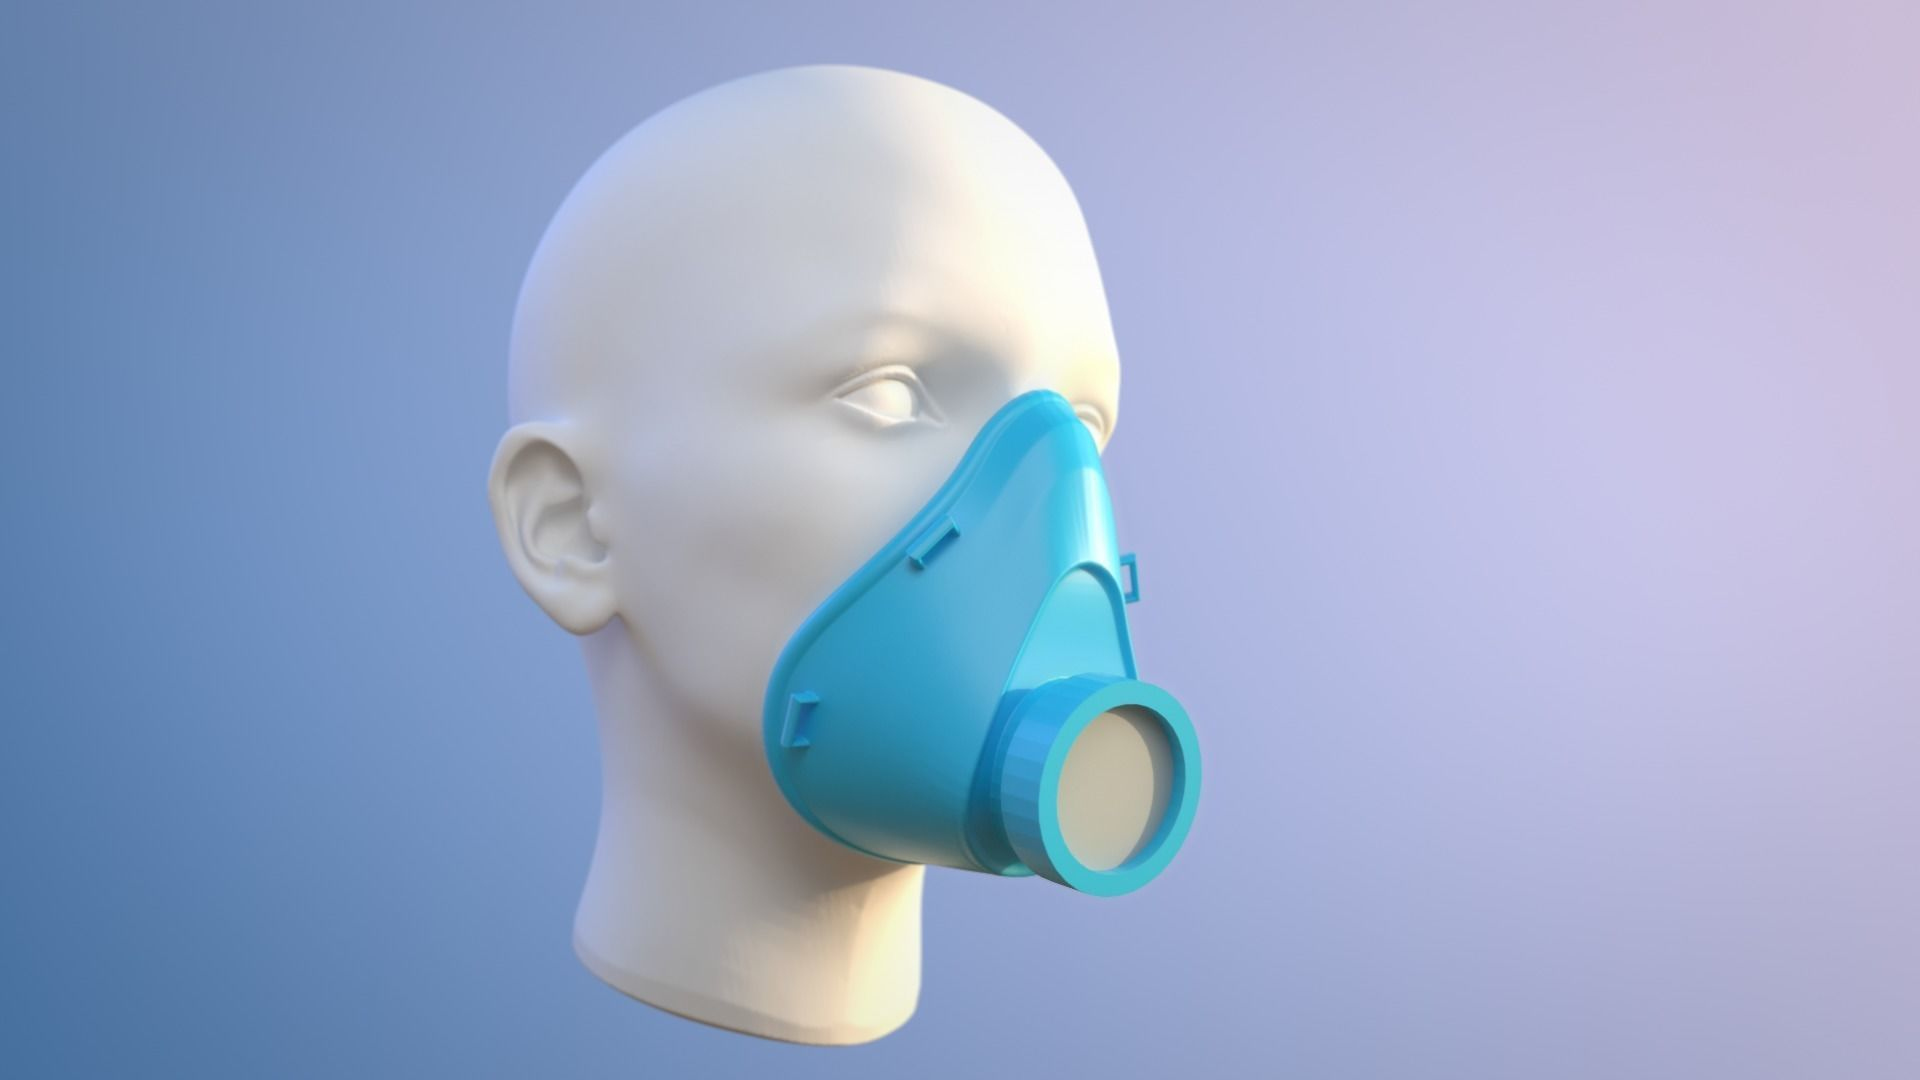 Face Mask For Covid 19 Virus Protection 3D Printable Model